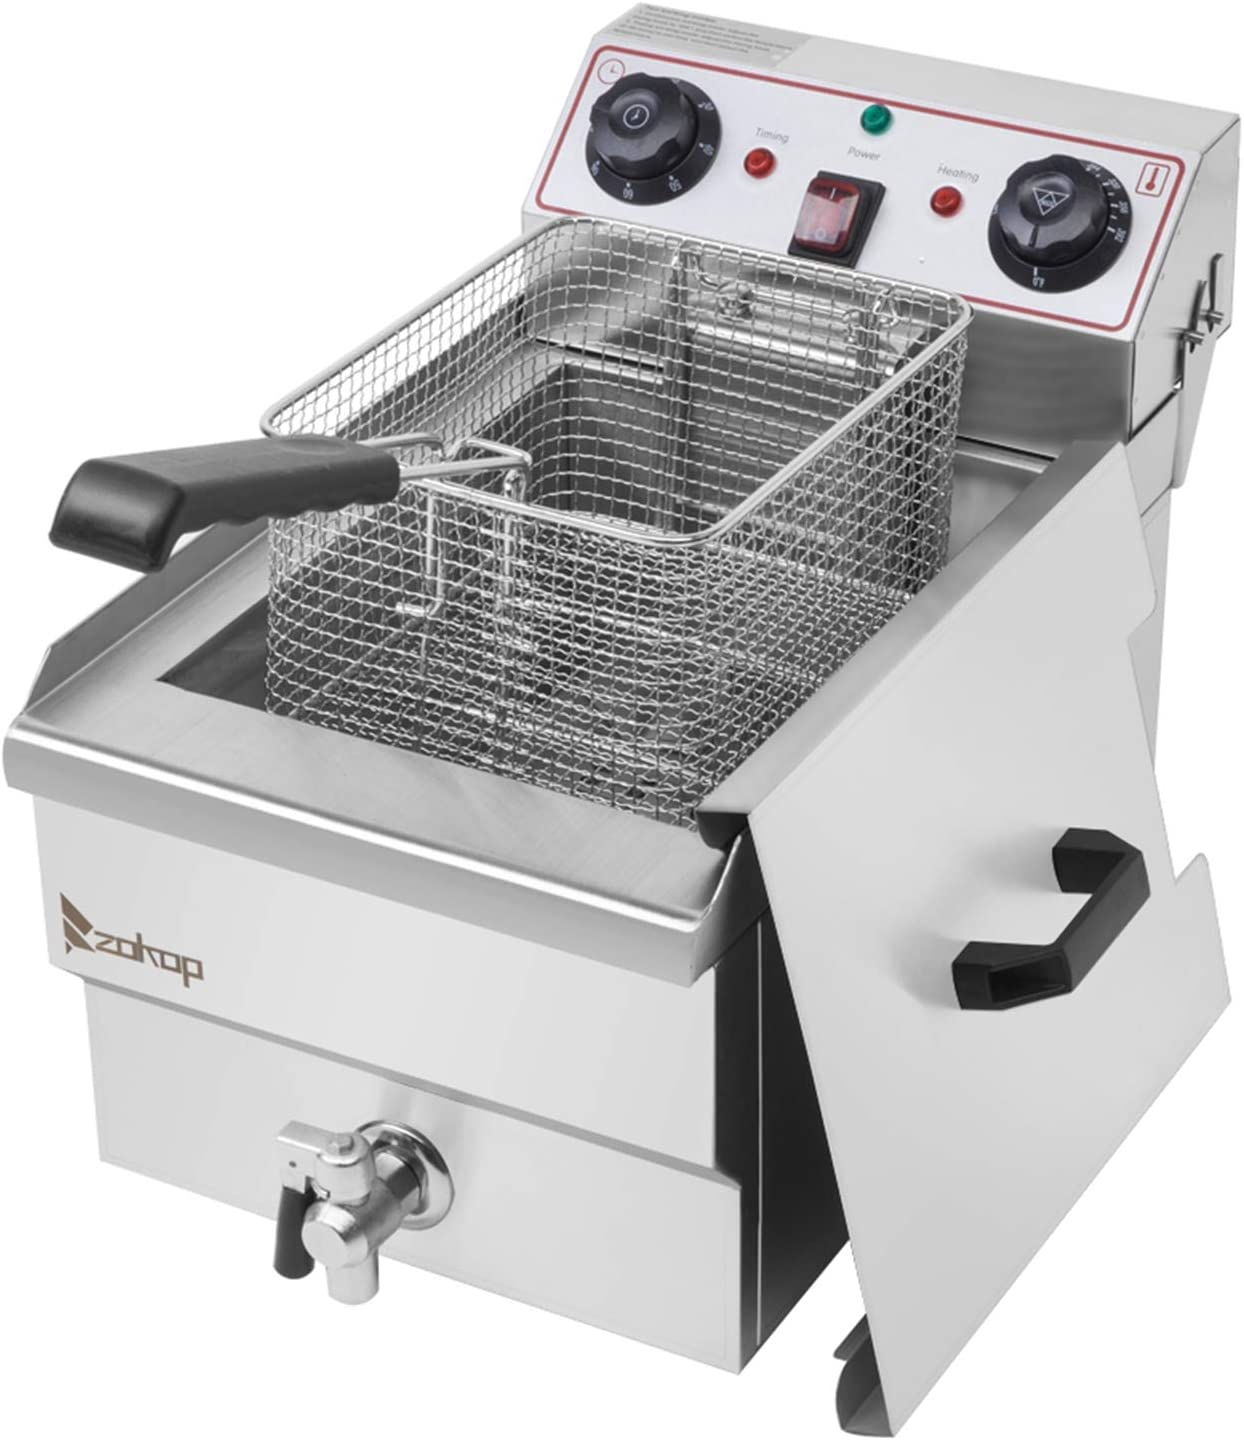 Deep Fryers, 8.5QT/8L Fry Max Large Capacity Removable Basket Single Tank Deep Fryer 60-Minute Timers Oil Filtration Electric Deep Fryer with Large Handle and Lid Cover for Commercial Use